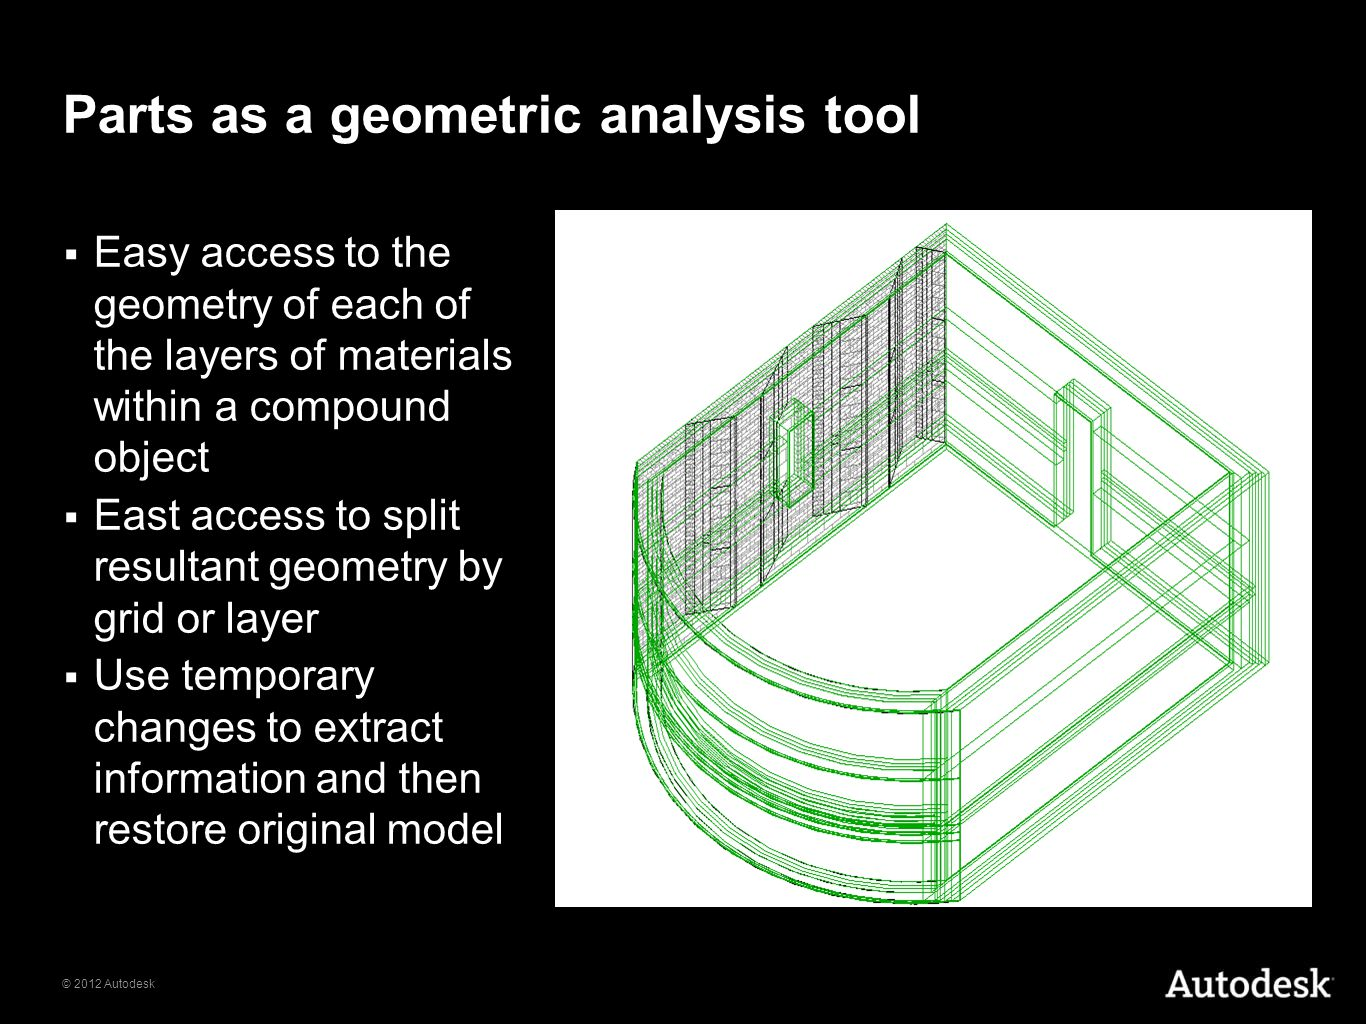 Parts as a geometric analysis tool